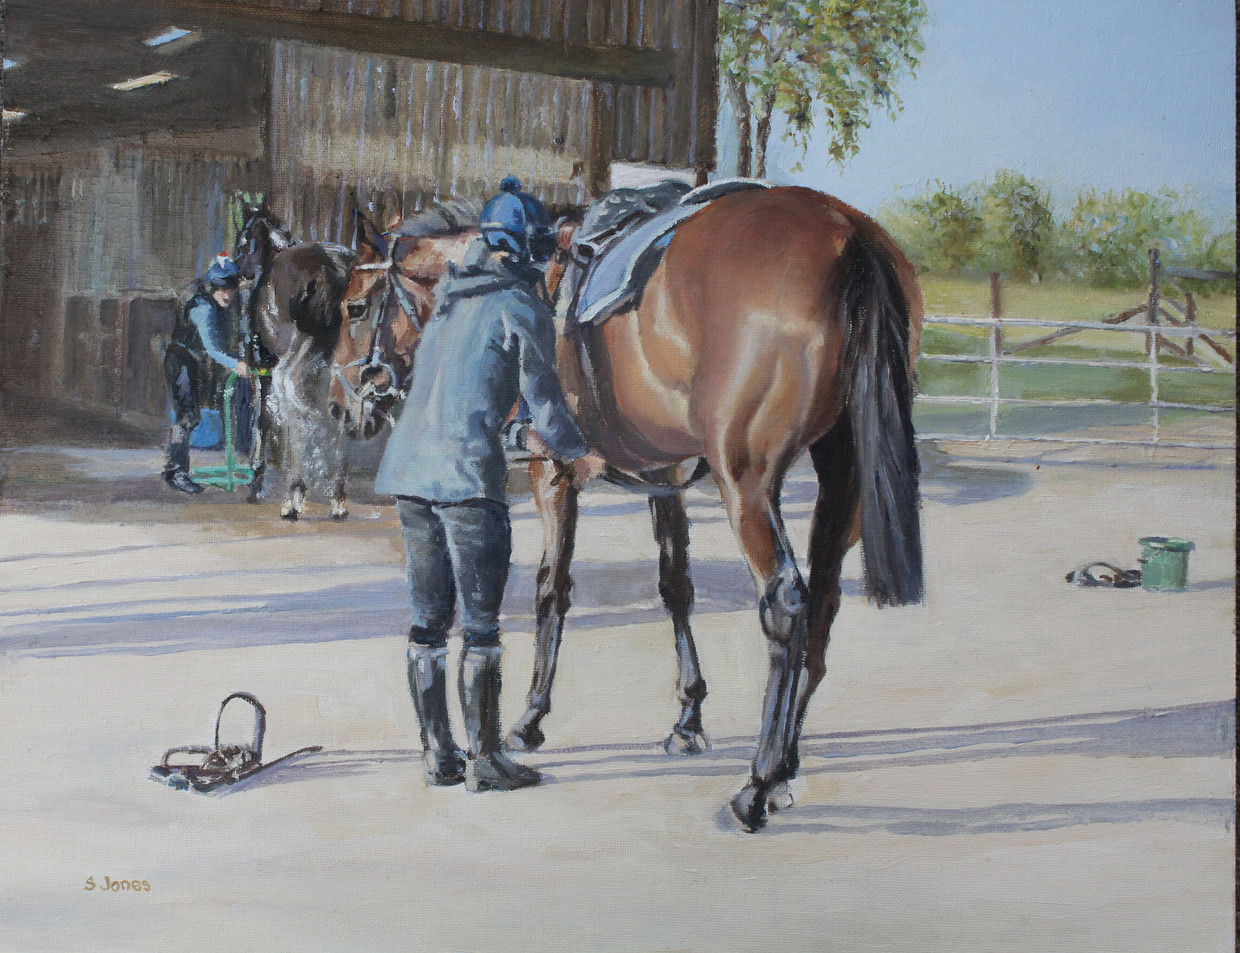 unsaddling after morning exercise